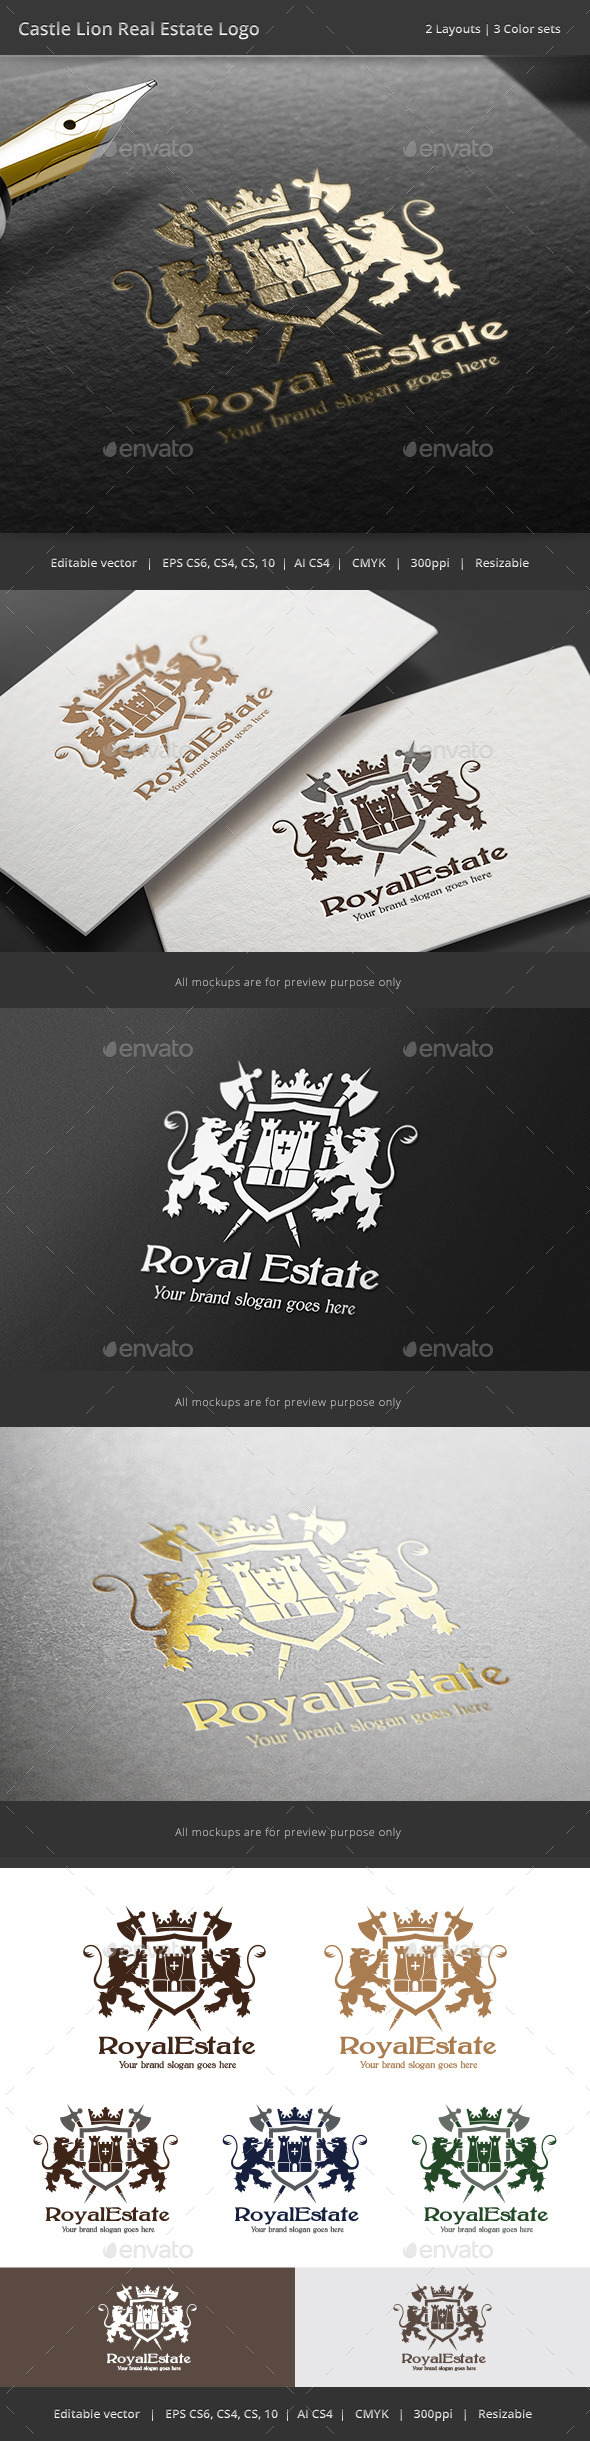 GraphicRiver Castle Lion Real Estate Logo 9240575